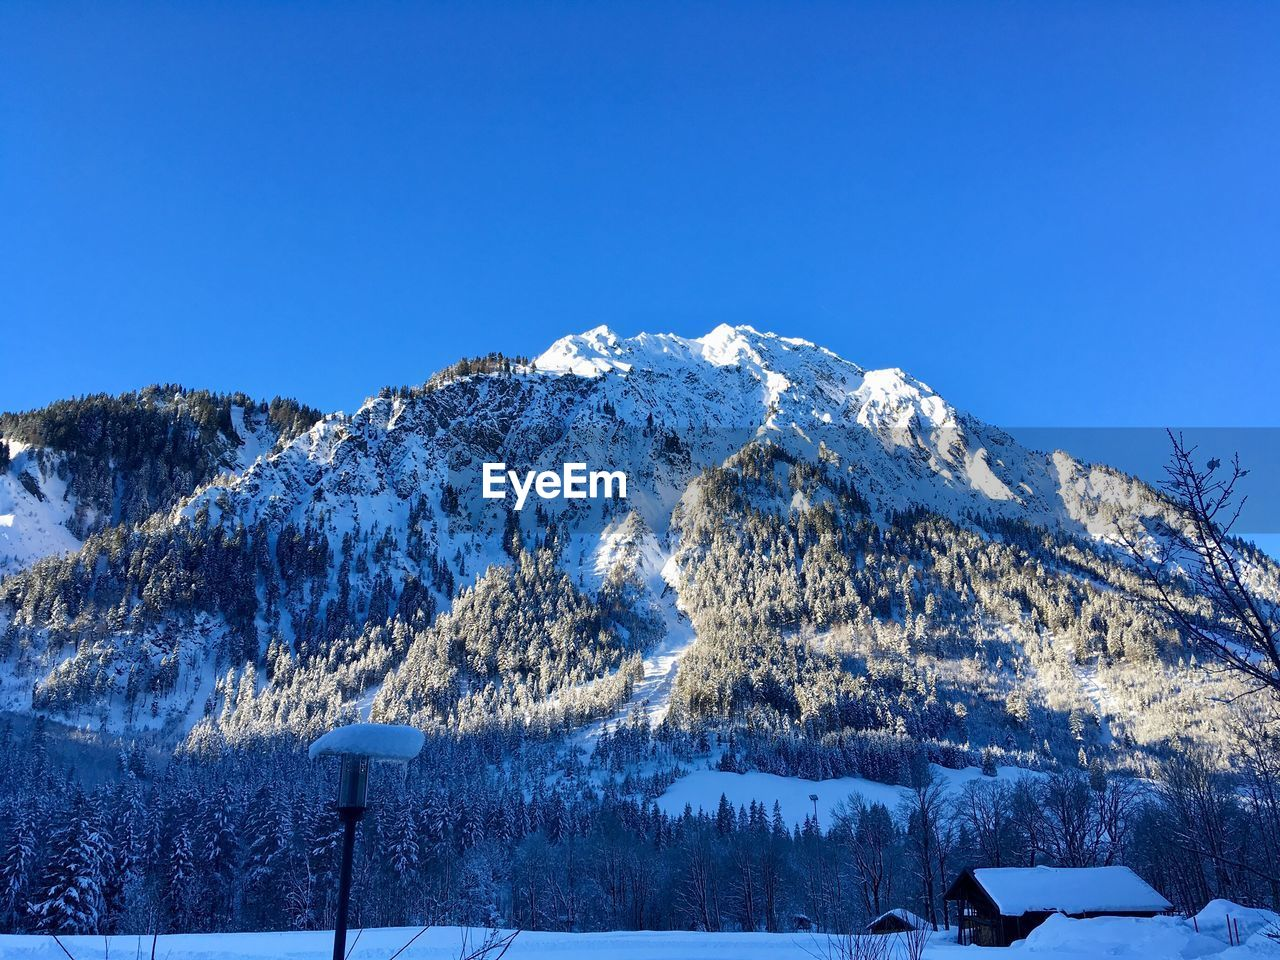 snow, winter, cold temperature, beauty in nature, sky, scenics - nature, tranquil scene, tranquility, mountain, blue, nature, clear sky, environment, no people, snowcapped mountain, copy space, white color, non-urban scene, tree, mountain range, mountain peak